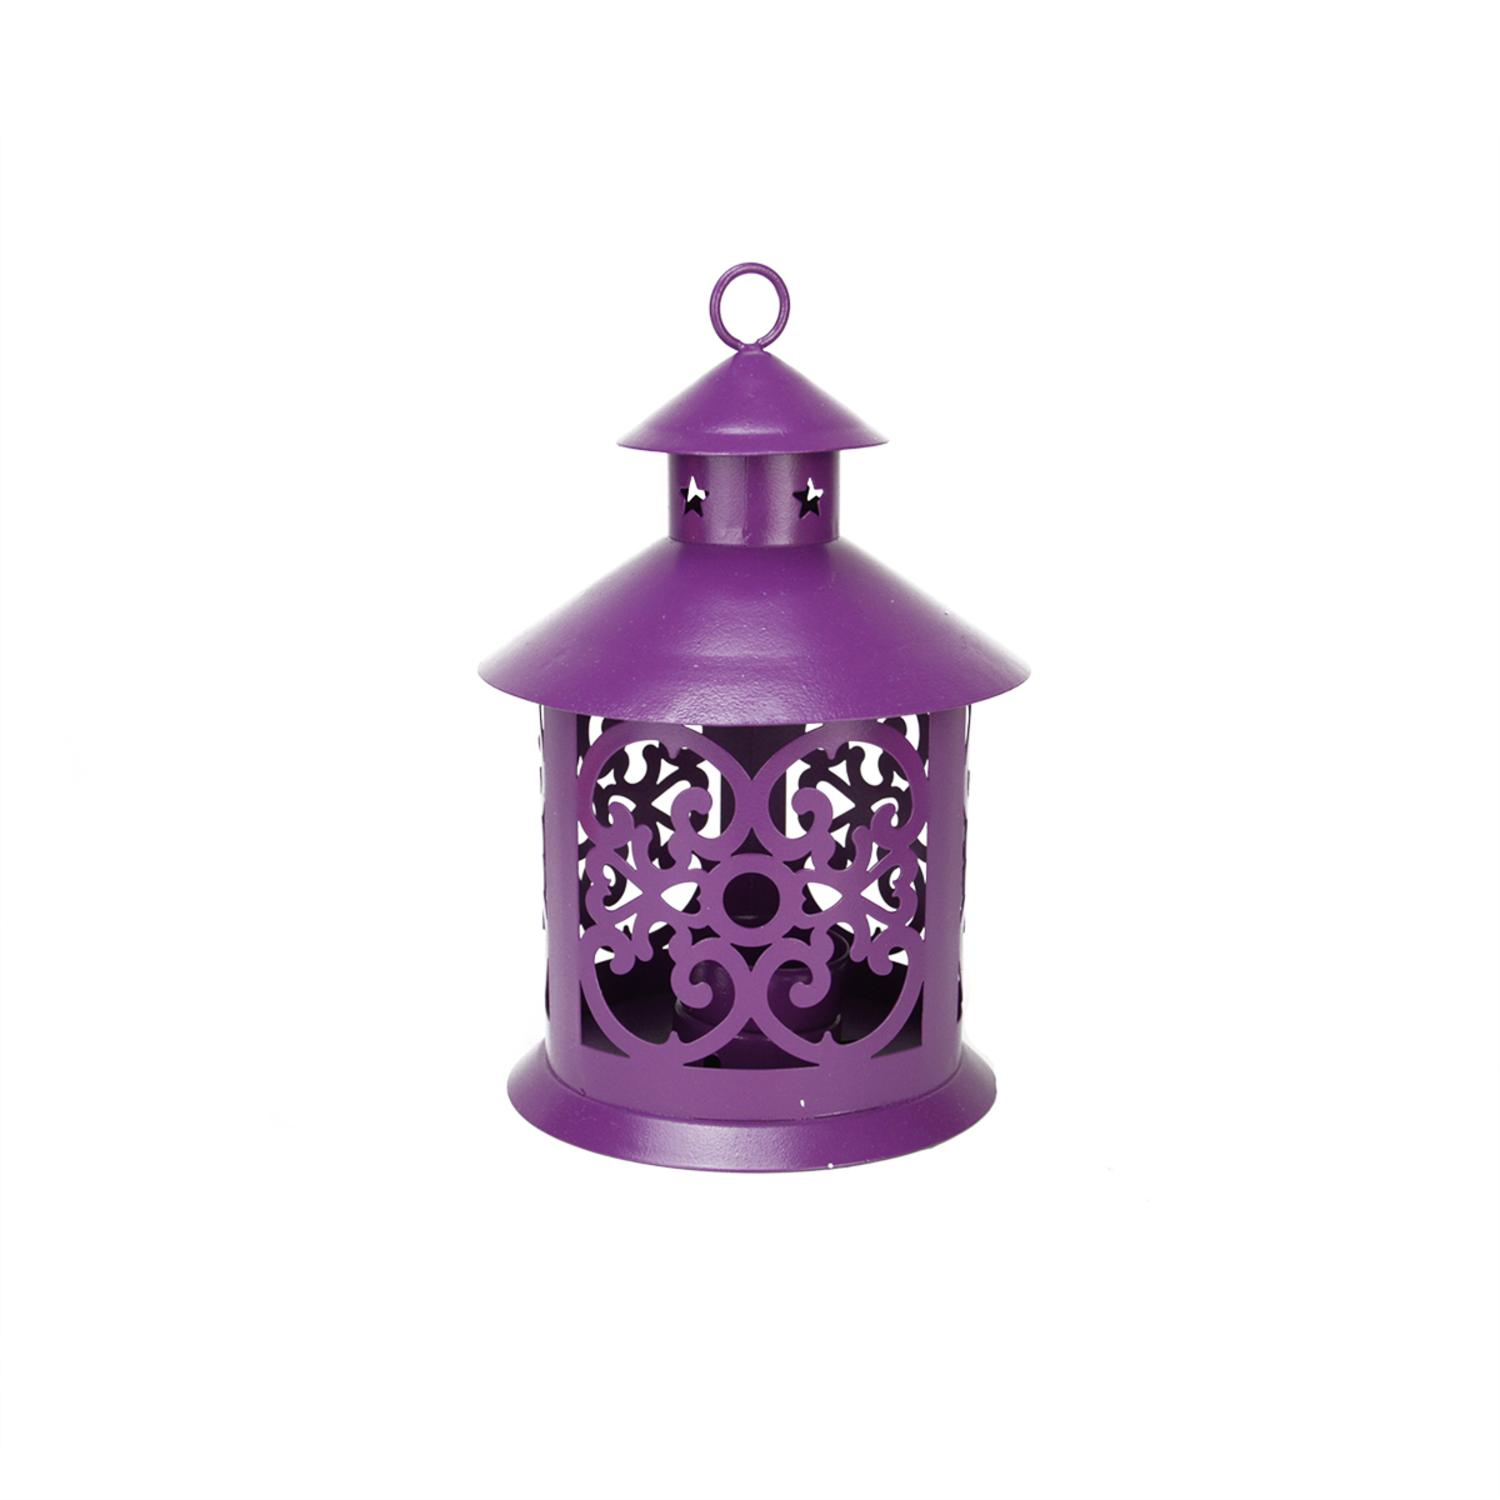 ''8'''' Shiny Purple Votive or TEALIGHT Candle Holder Lantern with Star and Scroll Cutouts''